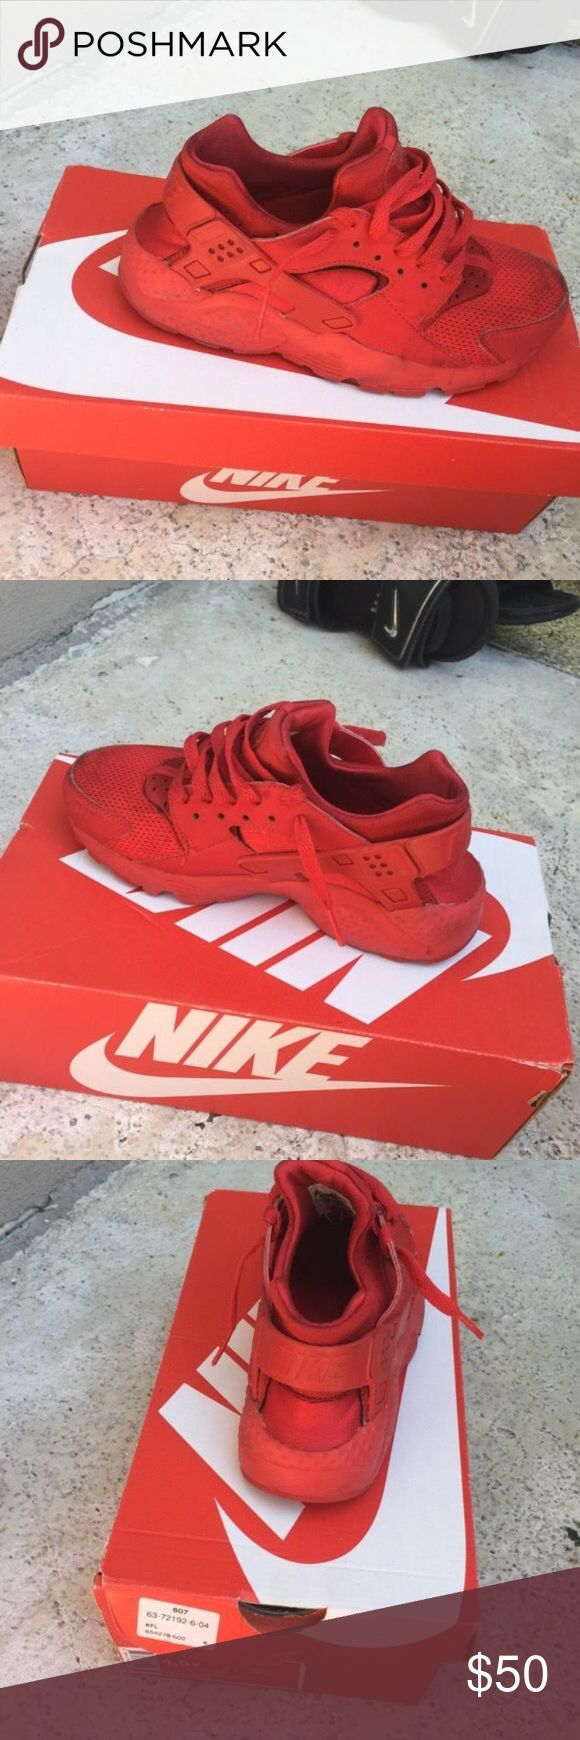 Nike hurache Good condition used all red comfortable sneakers Nike Shoes Sneakers